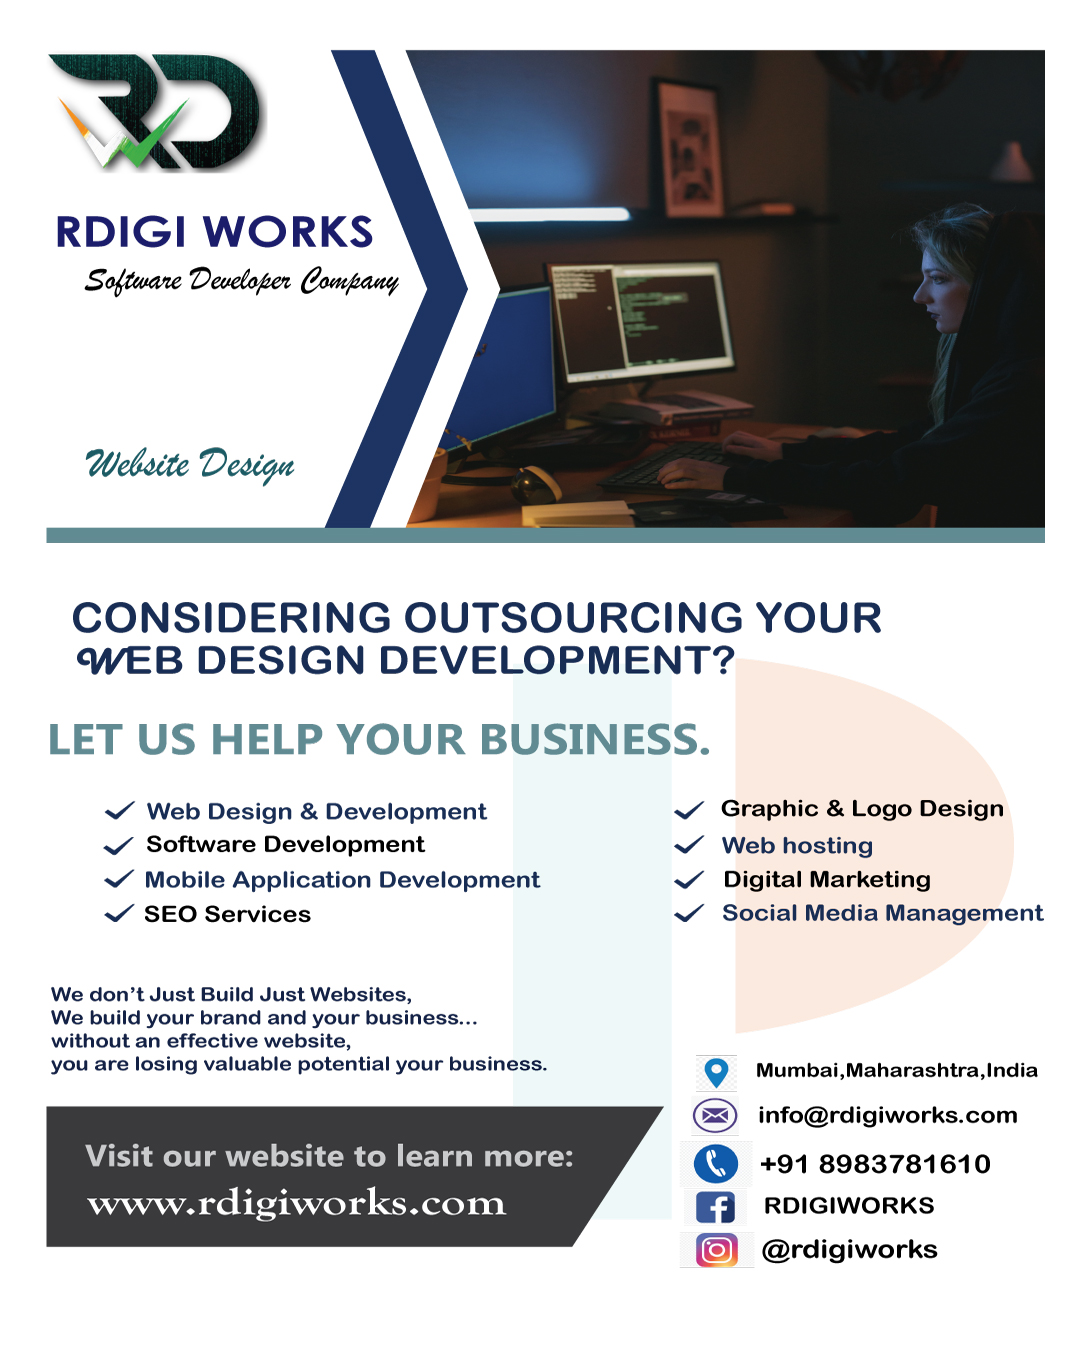 Best Offers For You  Upto 50% Off. Make Your website or Android apps and Grow your Business with RDIGI WORKS